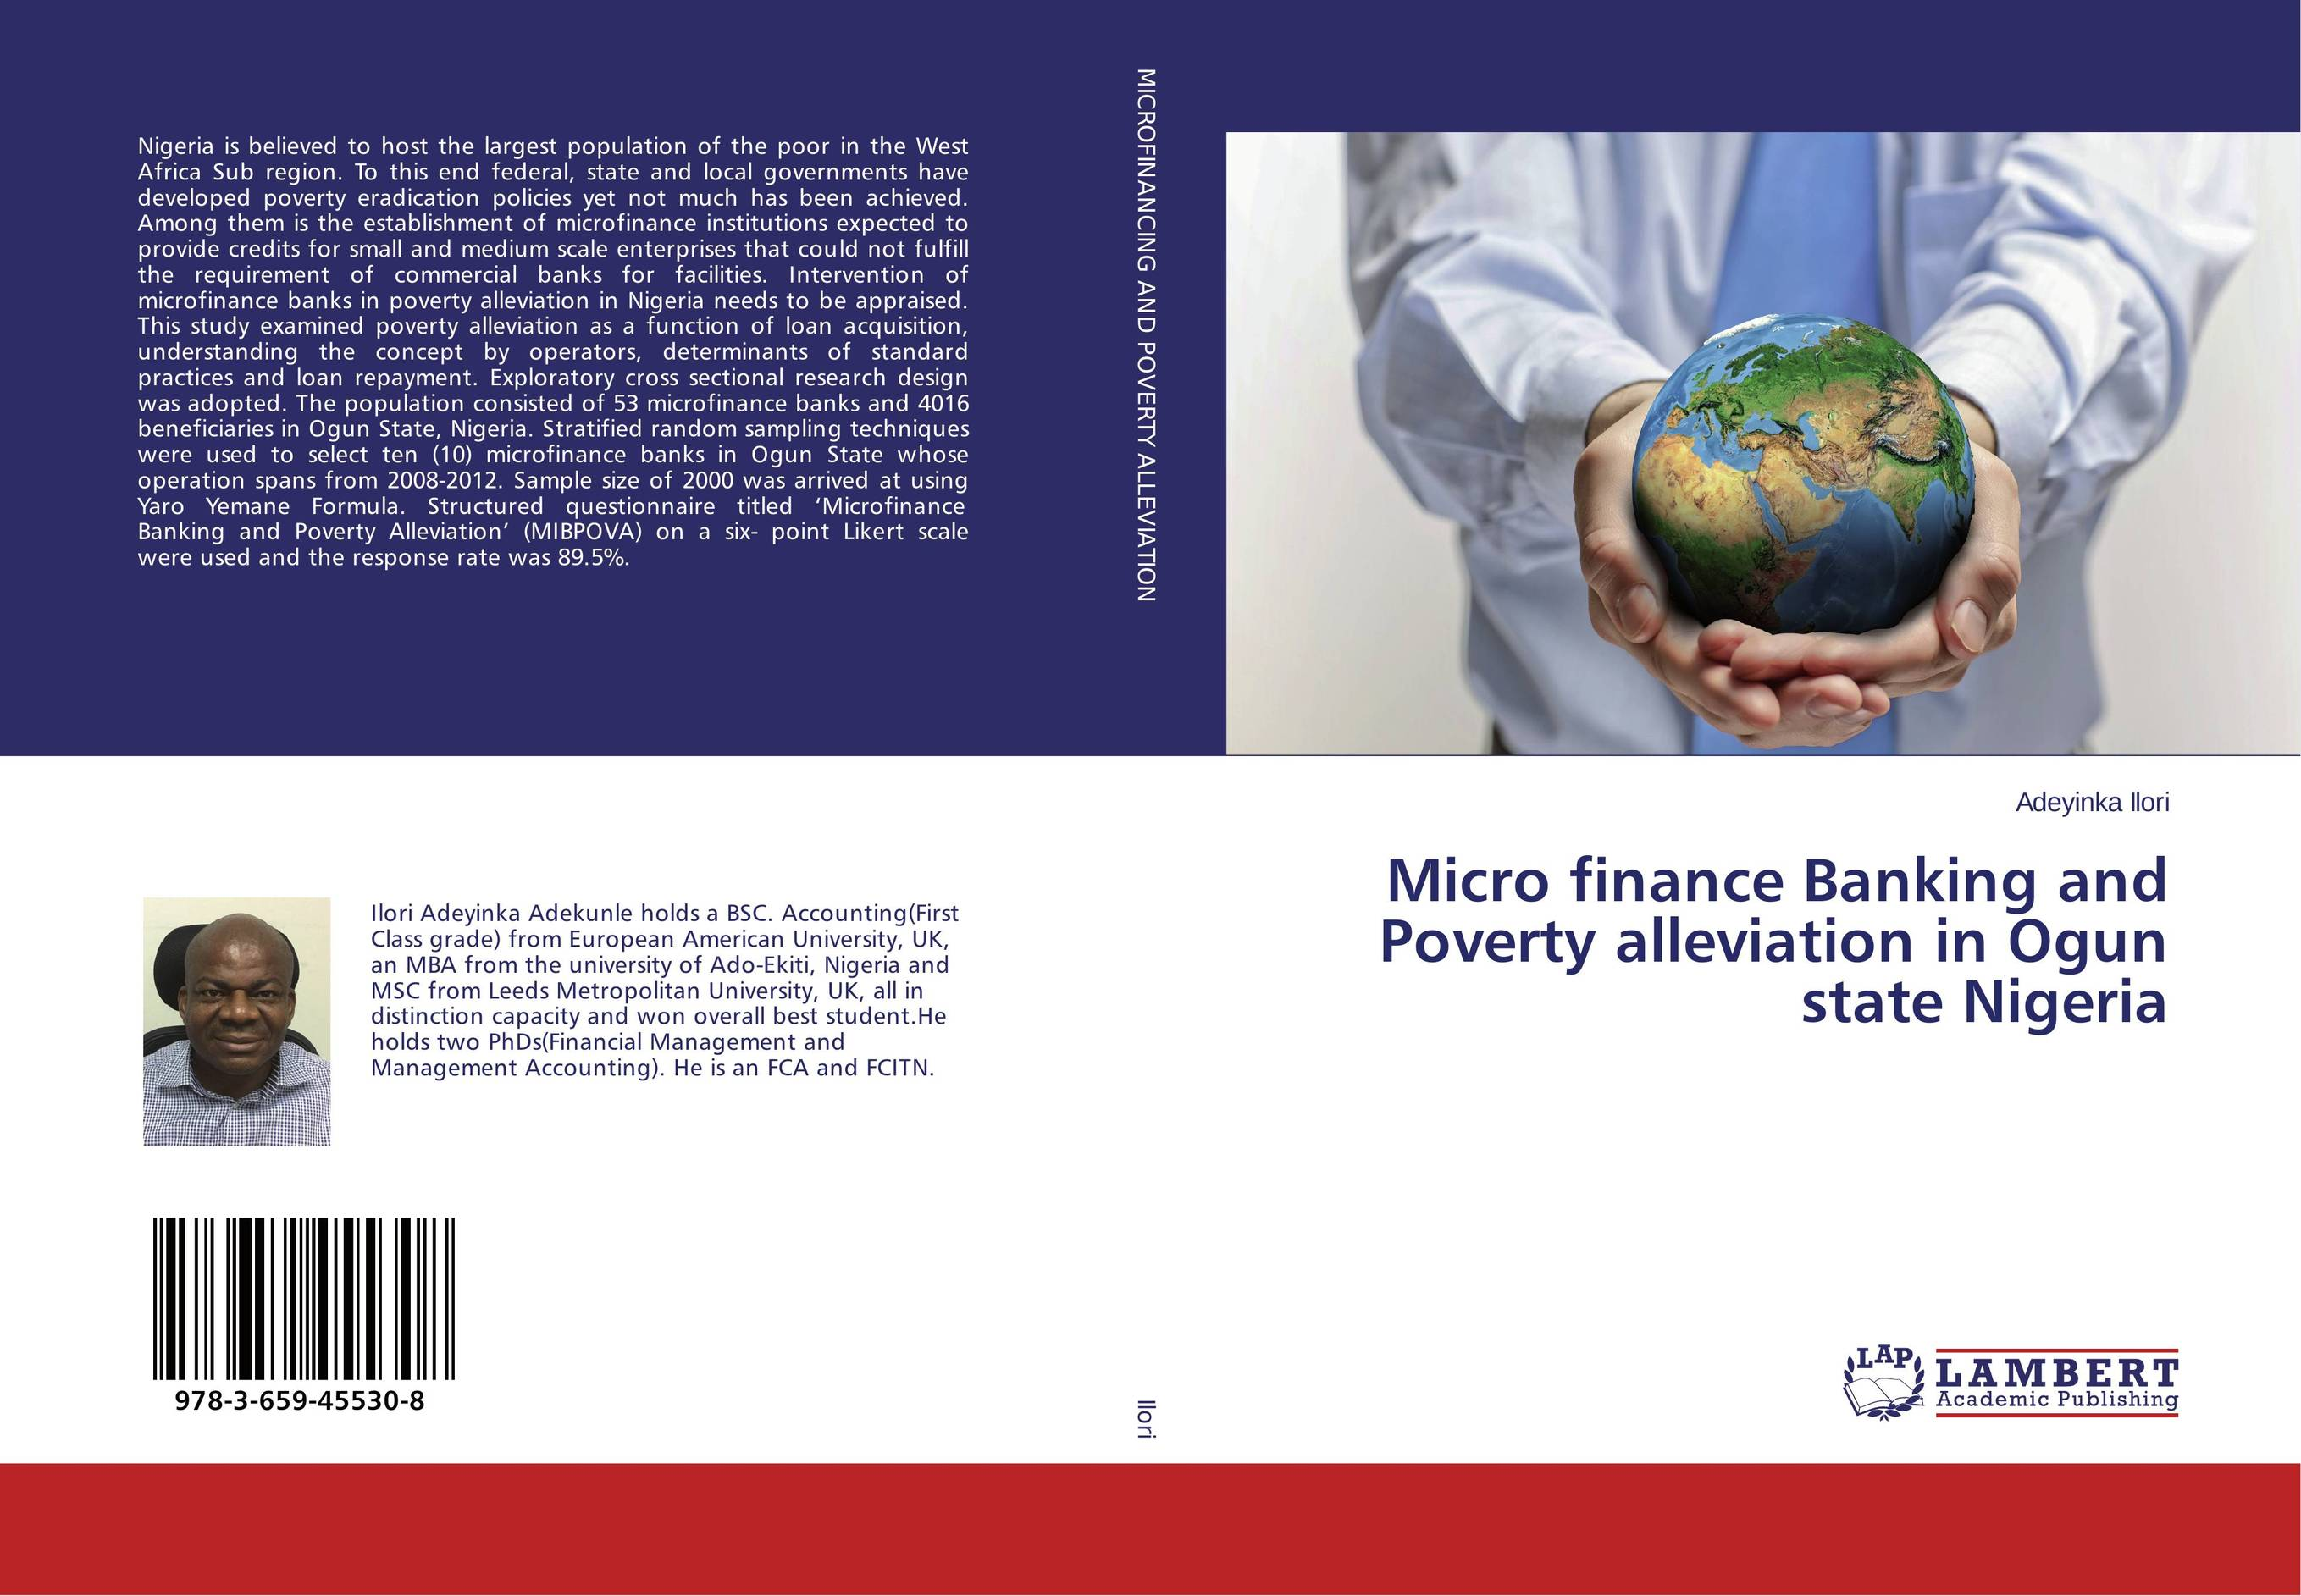 Micro finance Banking and Poverty alleviation in Ogun state Nigeria jaynal ud din ahmed and mohd abdul rashid institutional finance for micro and small entreprises in india